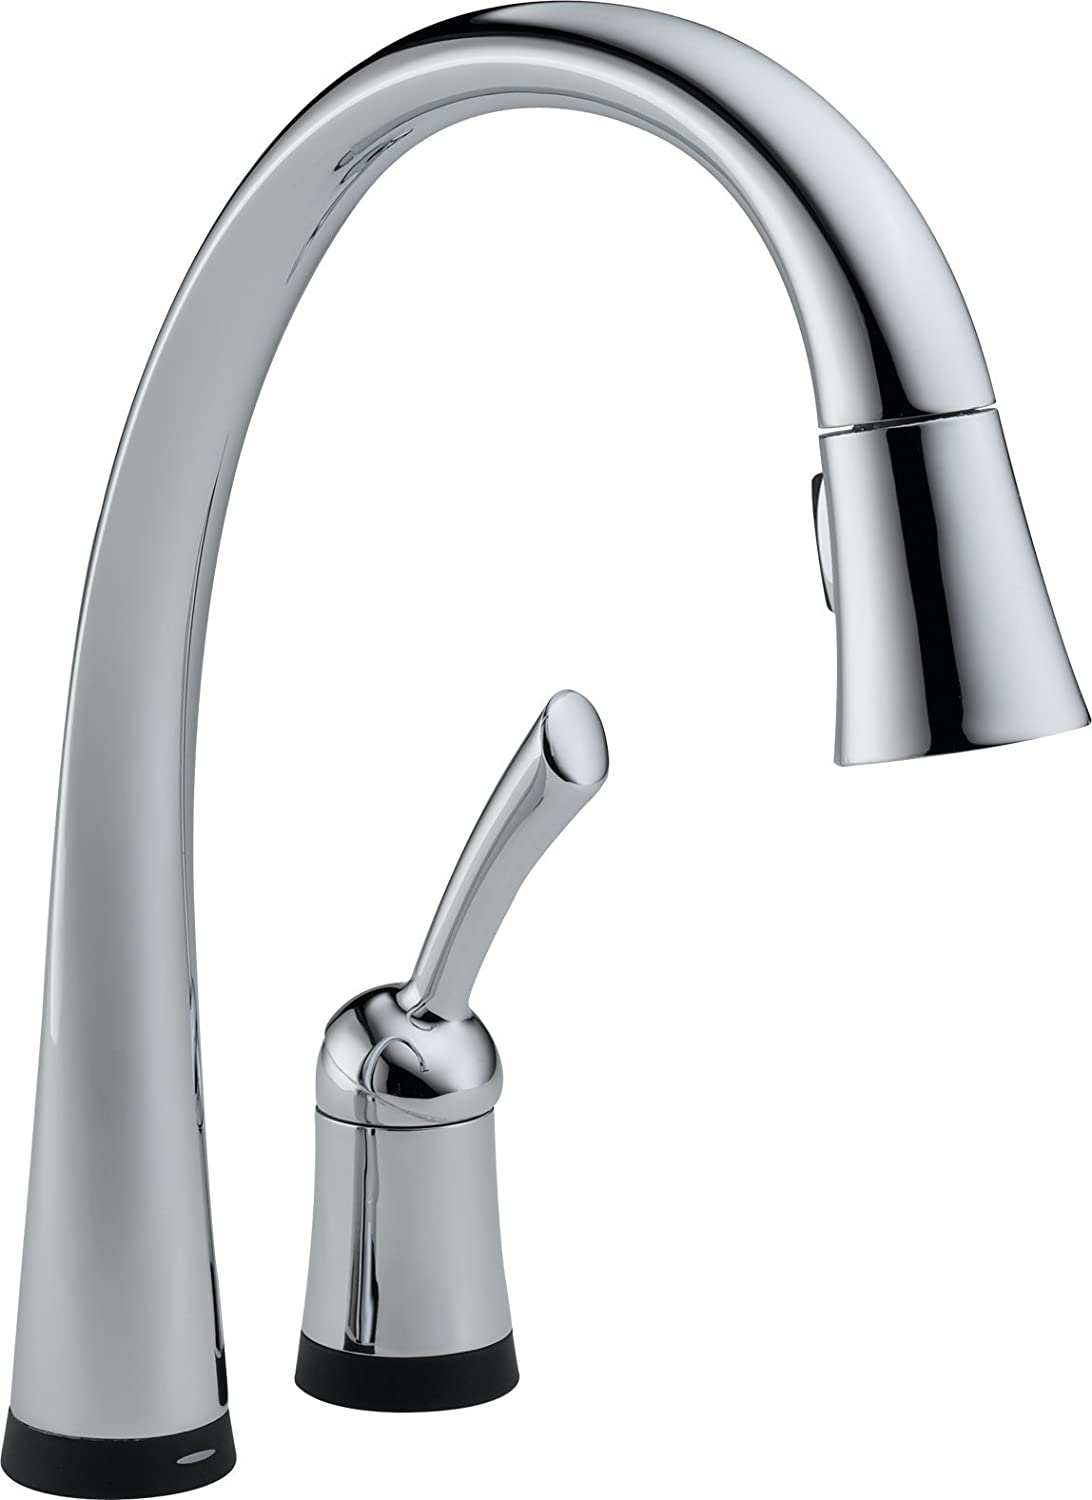 Delta 980T DST Pilar Single Handle Pull Down Kitchen Faucet With Touch2O  Technology, Chrome   Touch On Kitchen Sink Faucets   Amazon.com